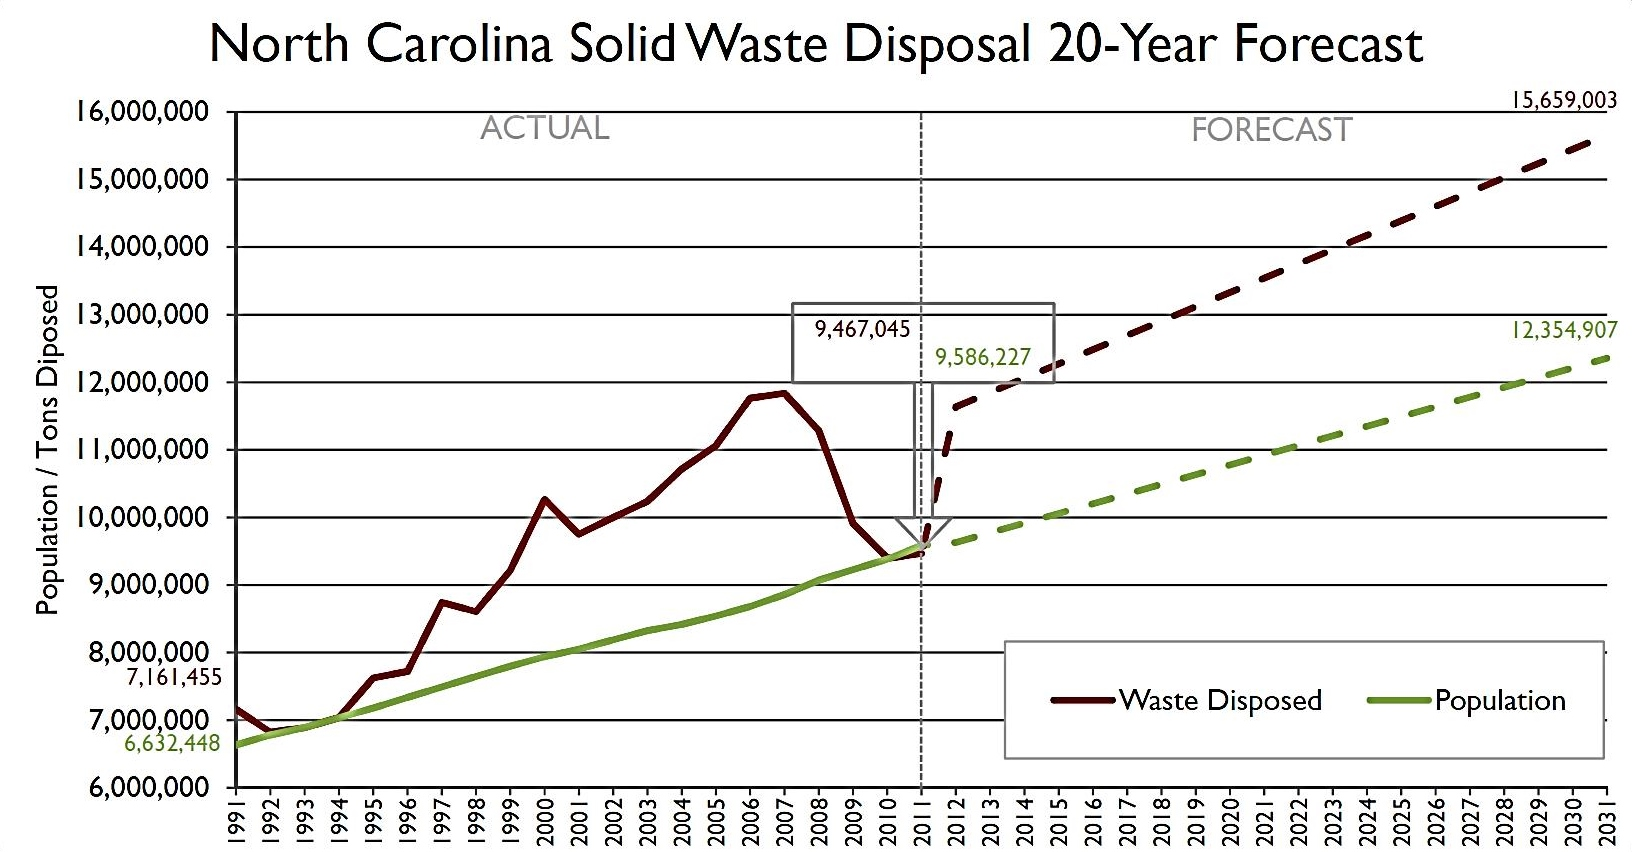 Solid Waste Forecast